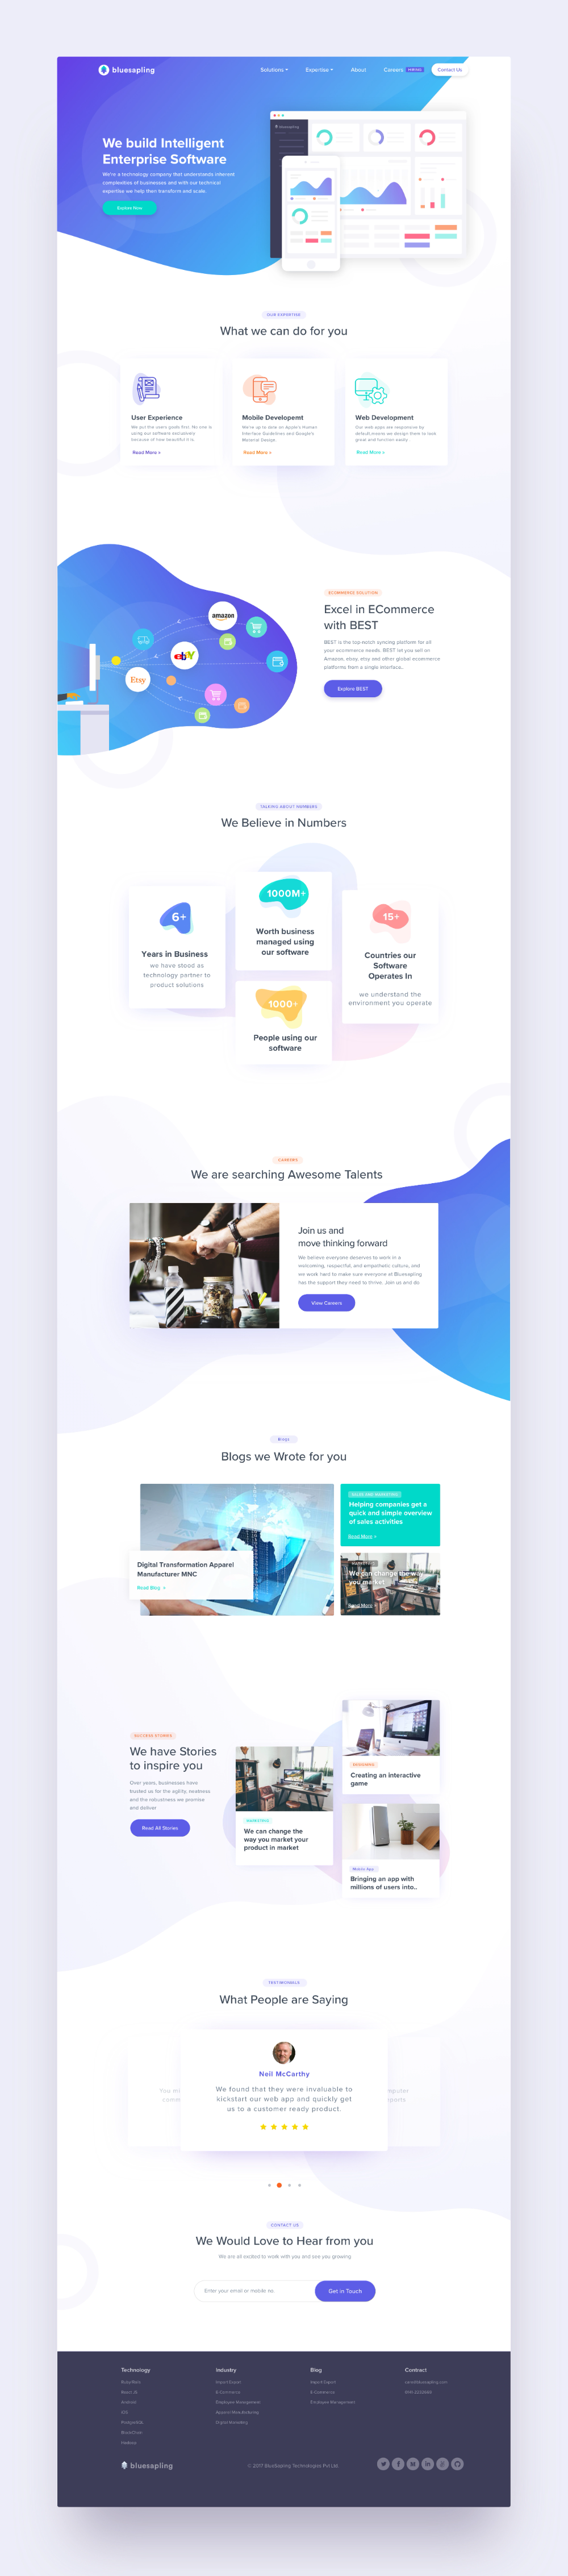 Dribbble Landing Page Attachment Png By Harsh Vijay In 2020 Web Design Website Template Design Web Layout Design